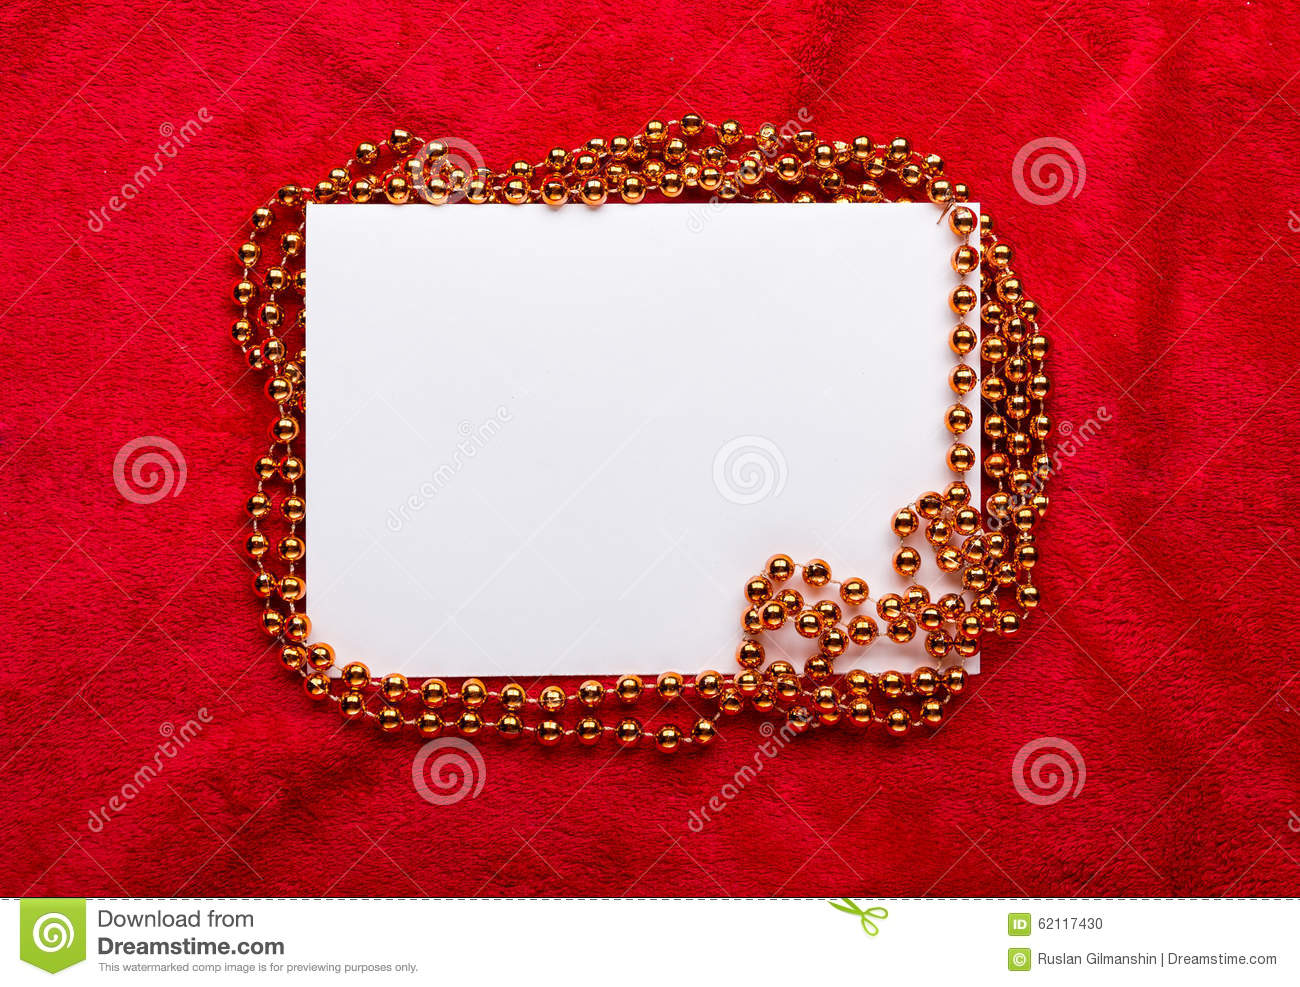 Christmas golden beads on red background